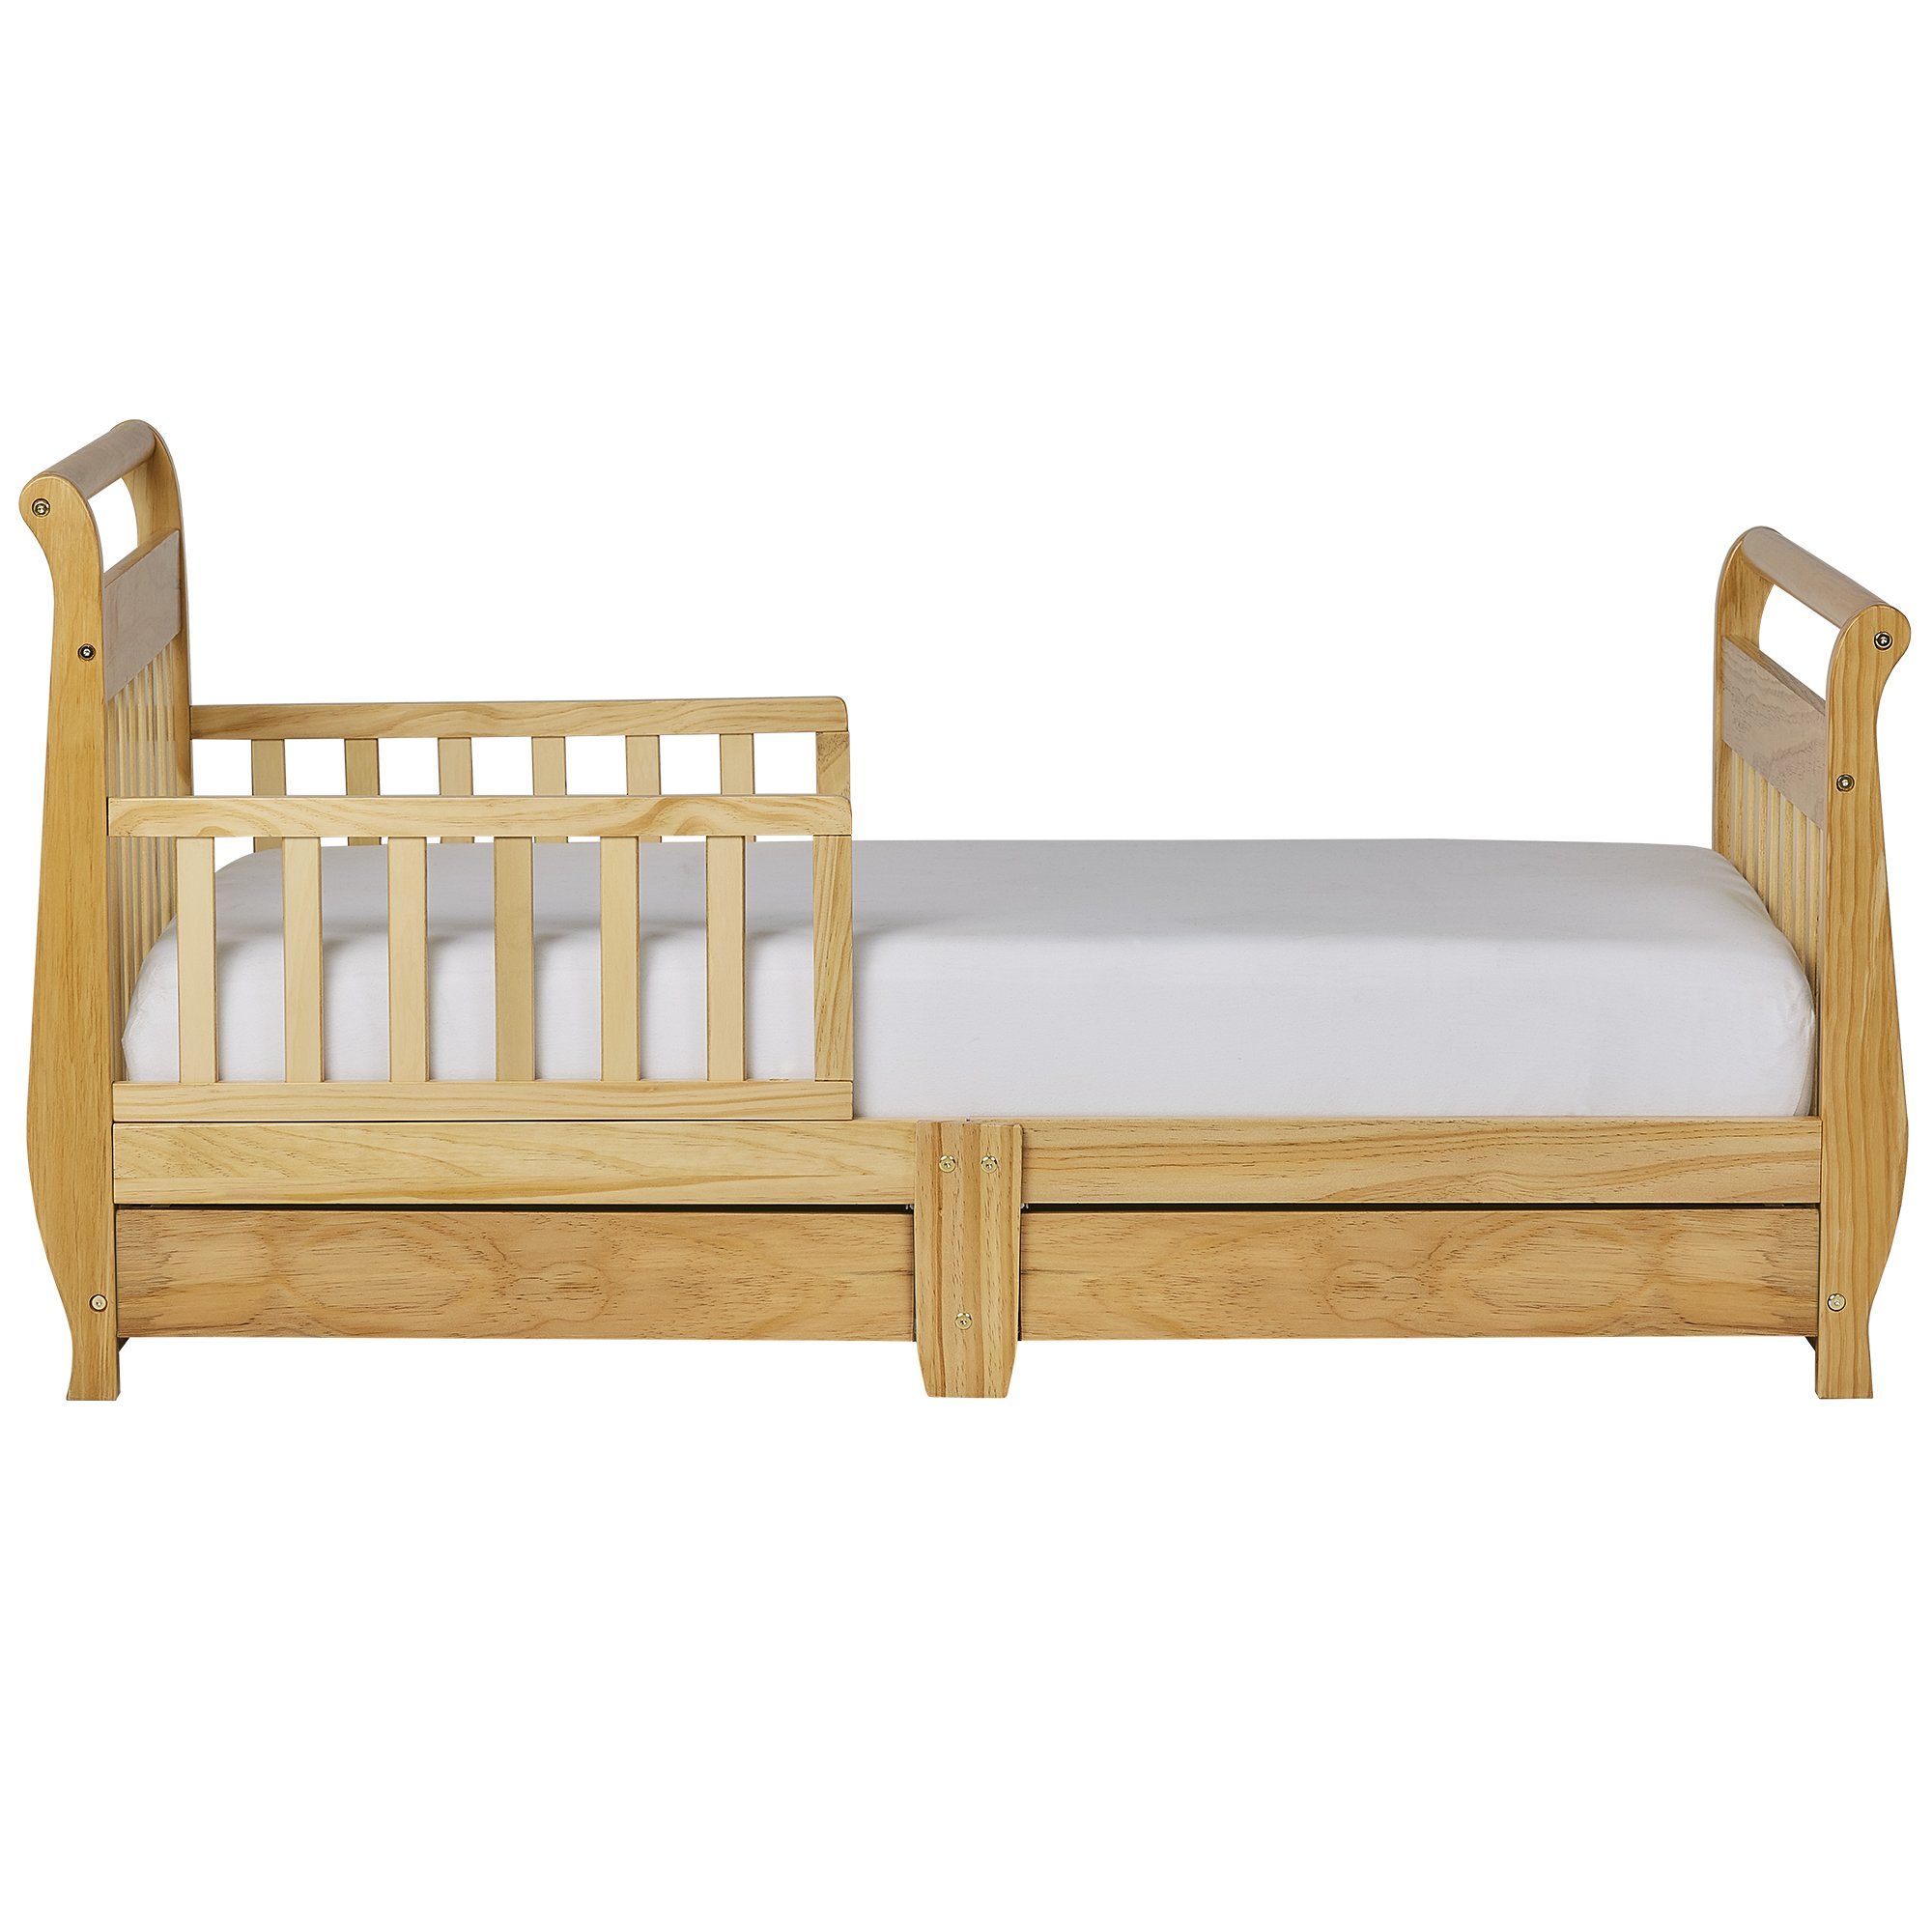 Dream On Me Toddler Bed with Storage Drawer - Natural by Dream On Me